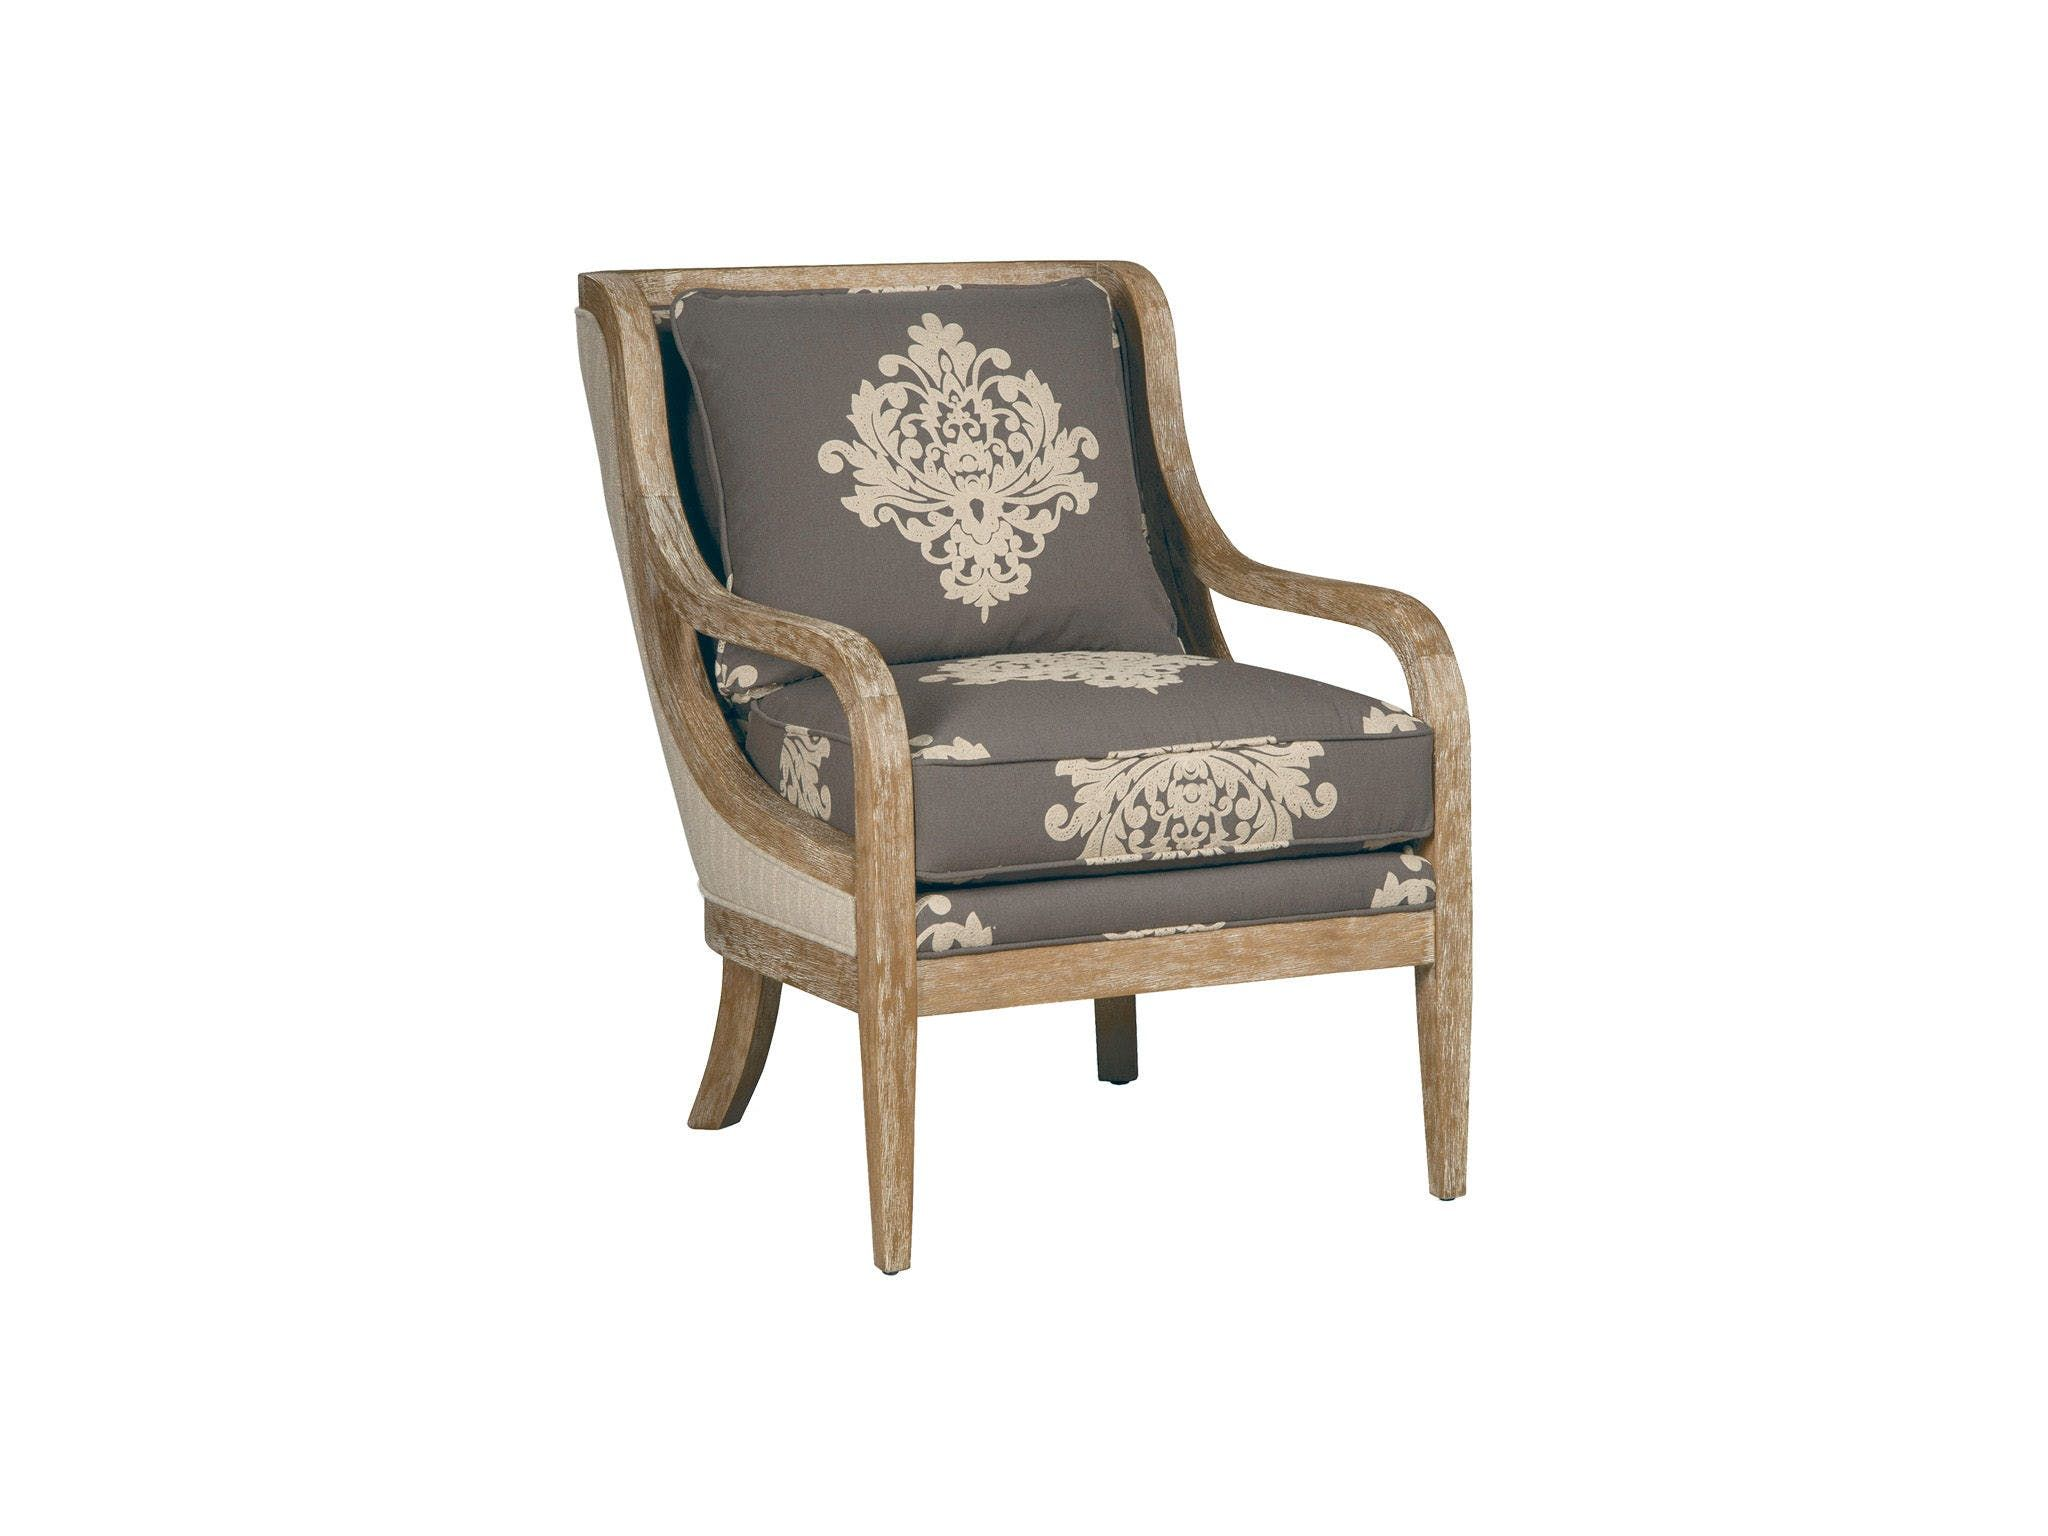 The rich wood detailing on this elegant chair speaks for